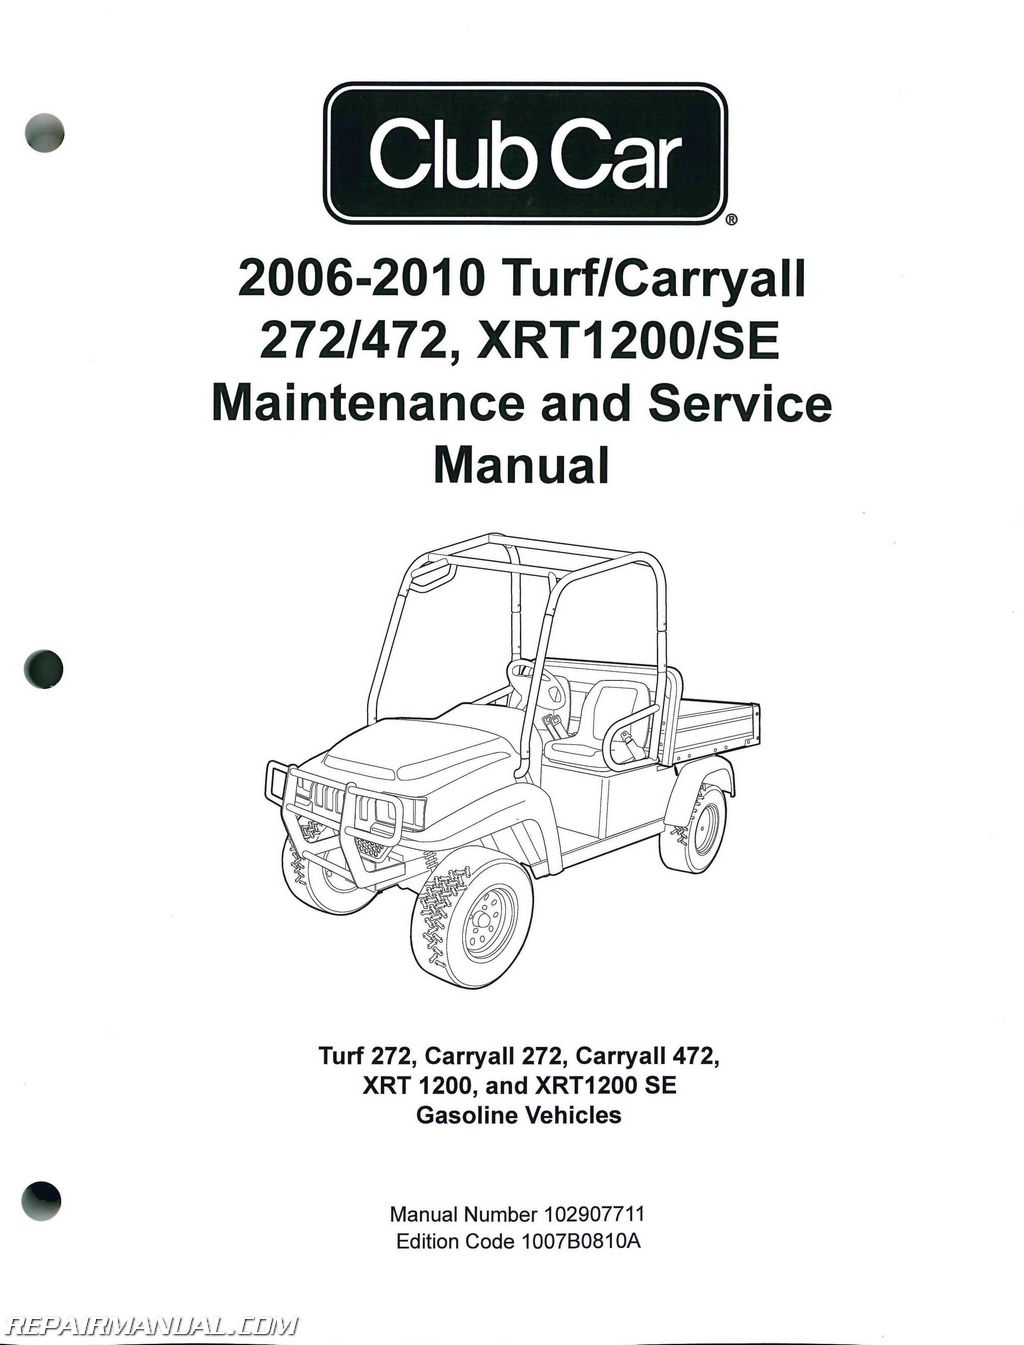 2006 2010 Club Car Turf Carryall 272 472 XRT1200 SE Turf 272 Carryall 272 Carryall 472 XRT 1200 and XRT1200 SE Gas Service Manual1?resize\\\=665%2C873 club car model 26580 charger wiring diagram wiring diagrams Schumacher Battery Charger Wiring Diagram at panicattacktreatment.co